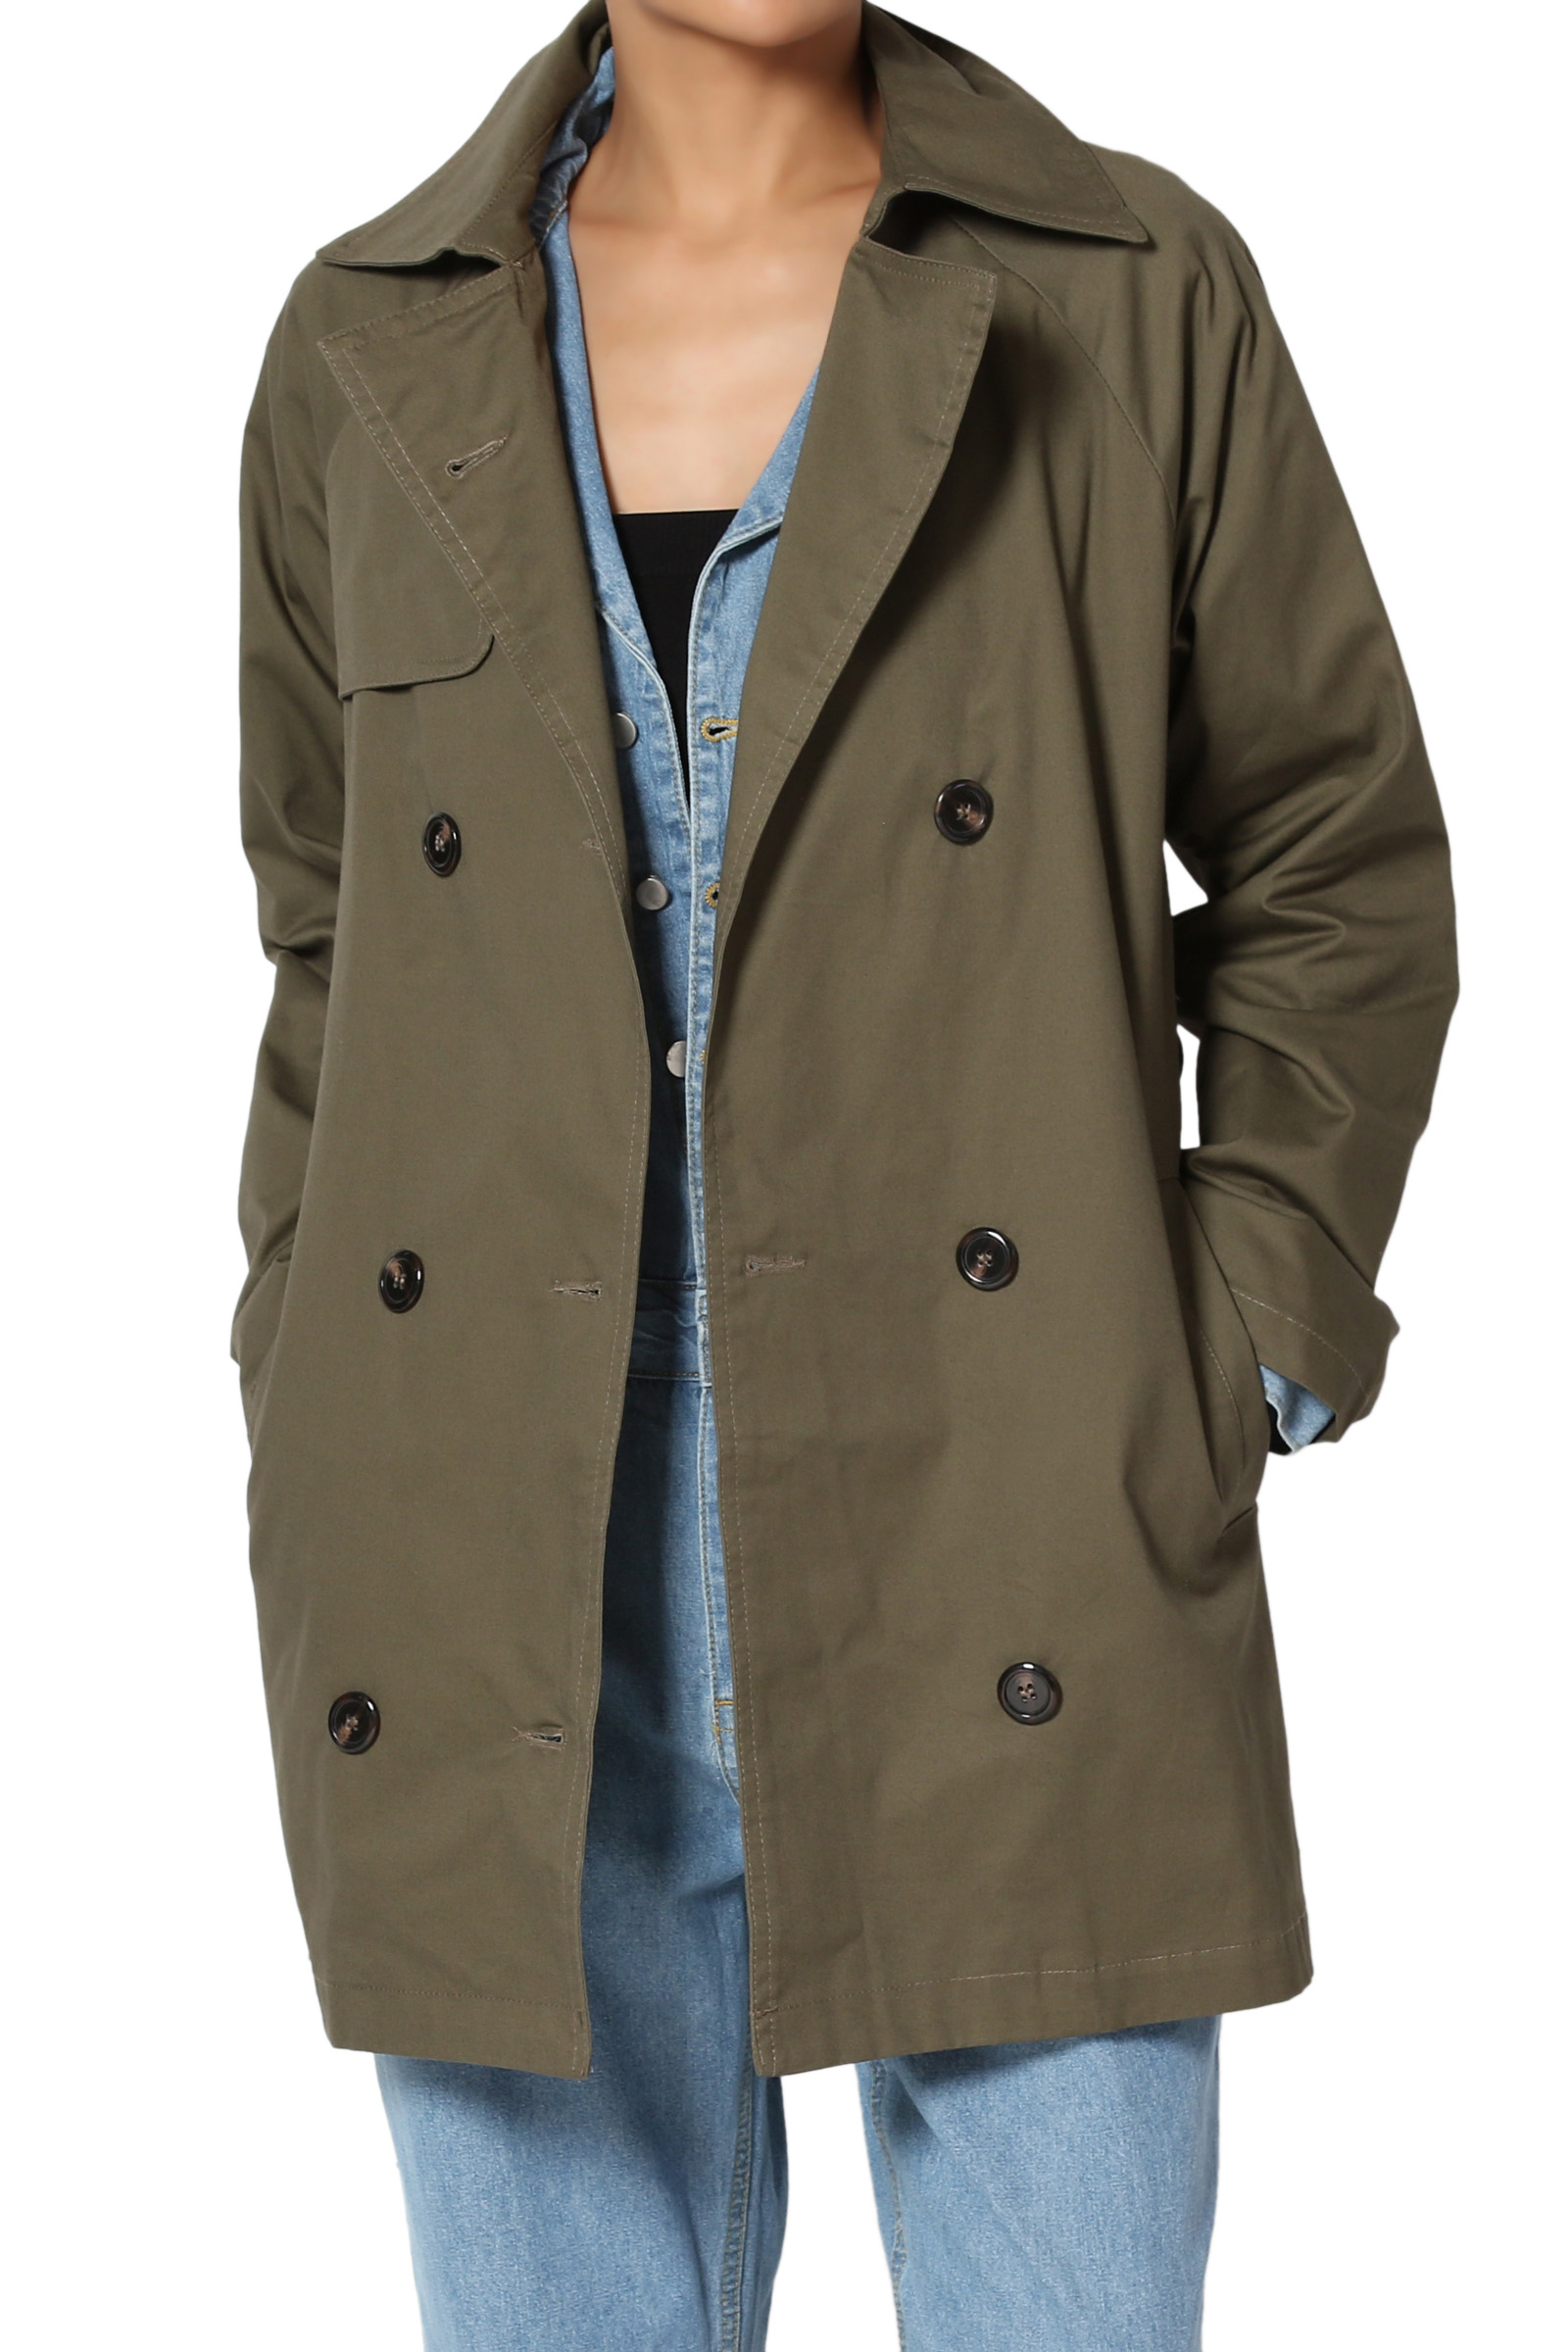 TheMogan Junior's Classic Double Breasted Short Half Trench Coat Utility Jacket